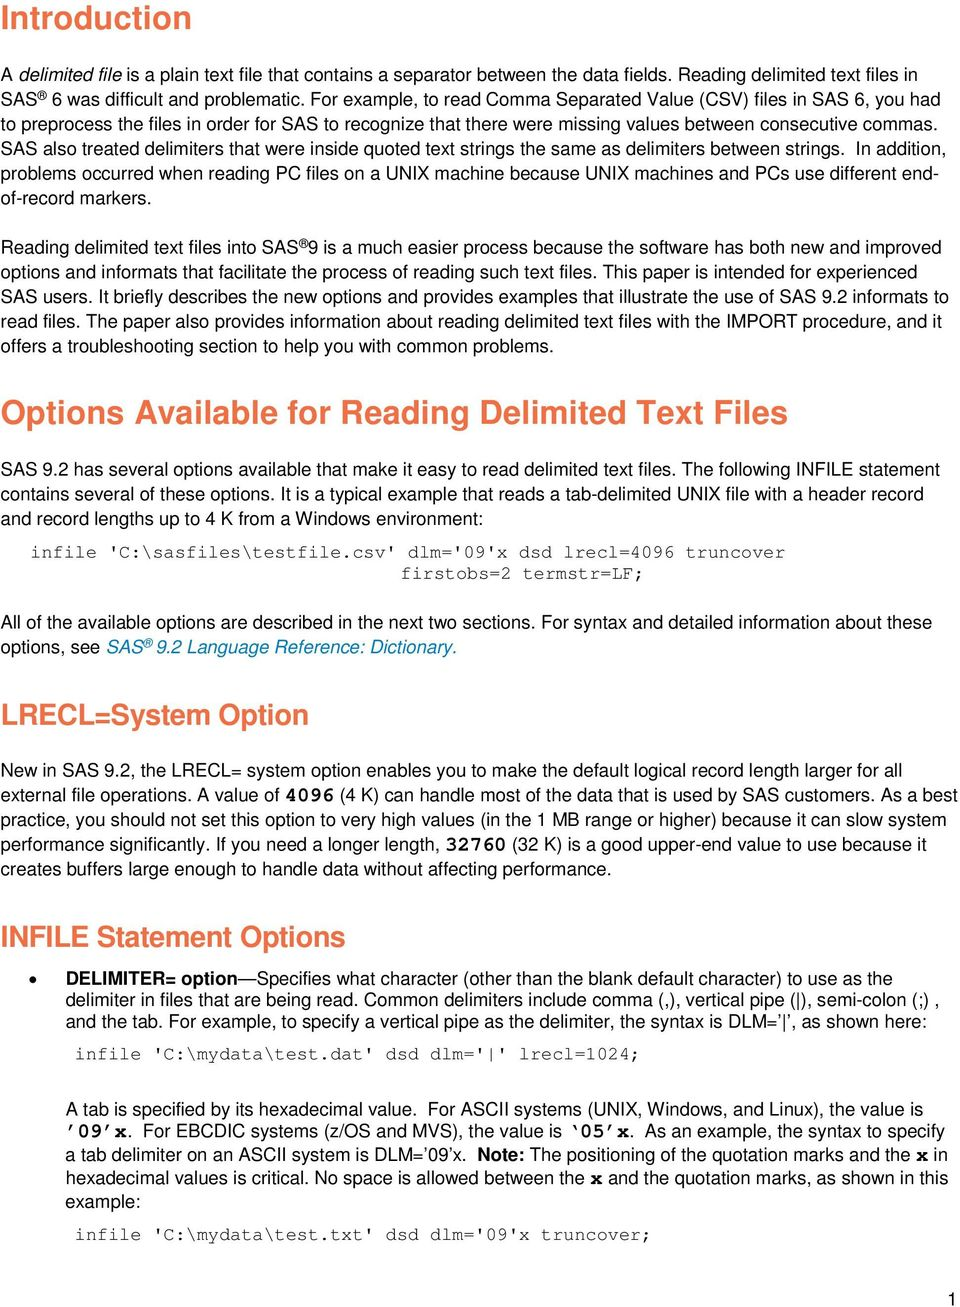 Technical Paper  Reading Delimited Text Files into SAS 9 - PDF